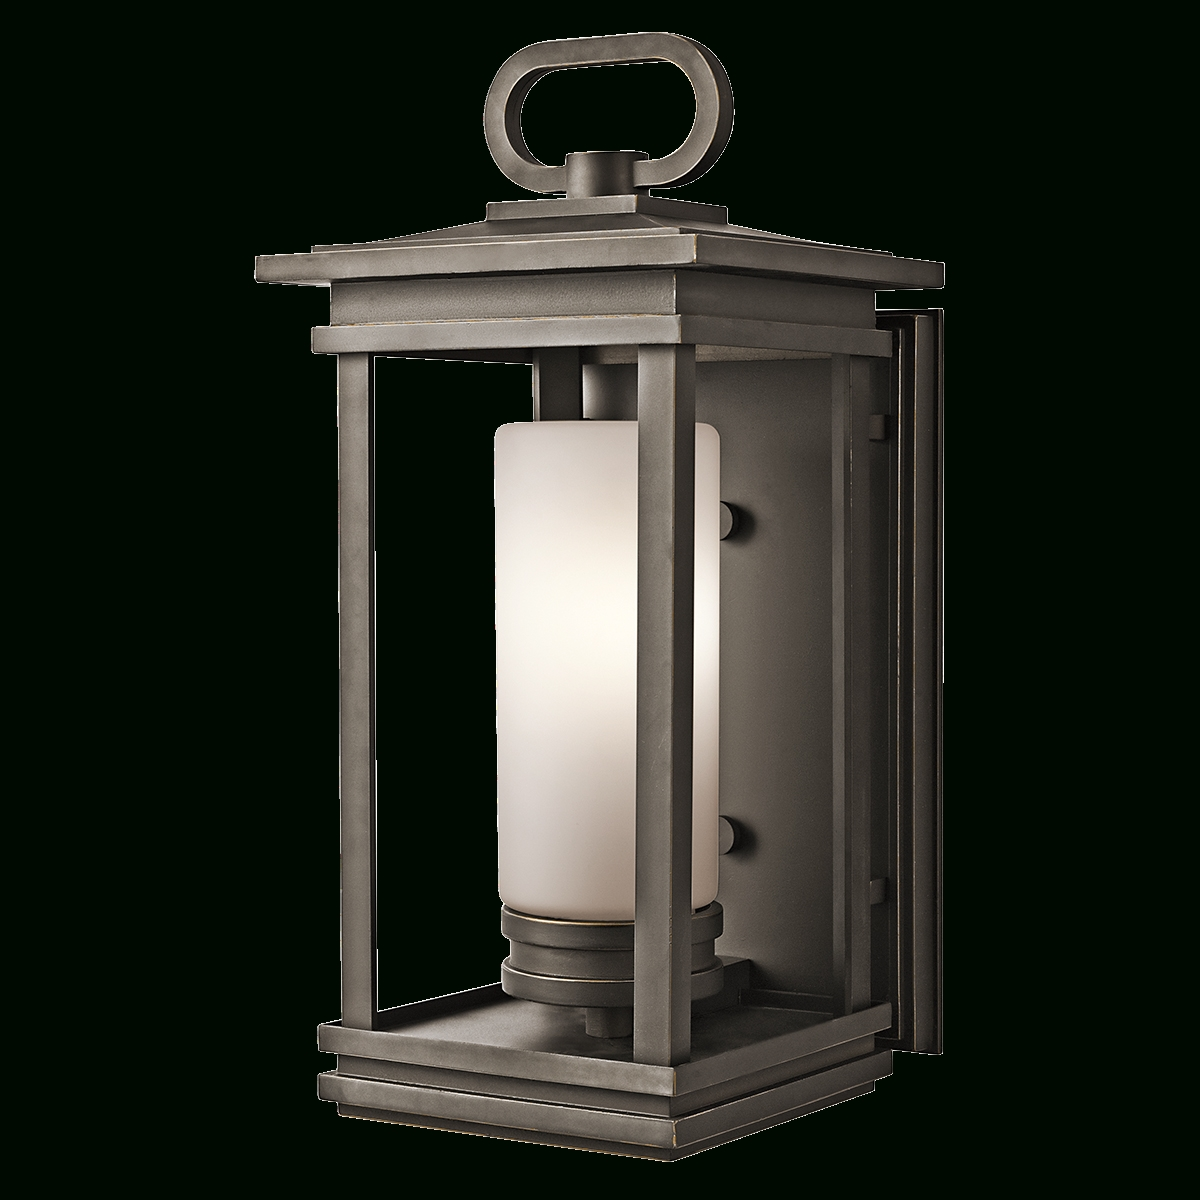 Kichler – South Hope Large Fluorescent Outdoor Lantern In Bronze Inside Famous Kichler Outdoor Lanterns (View 3 of 20)